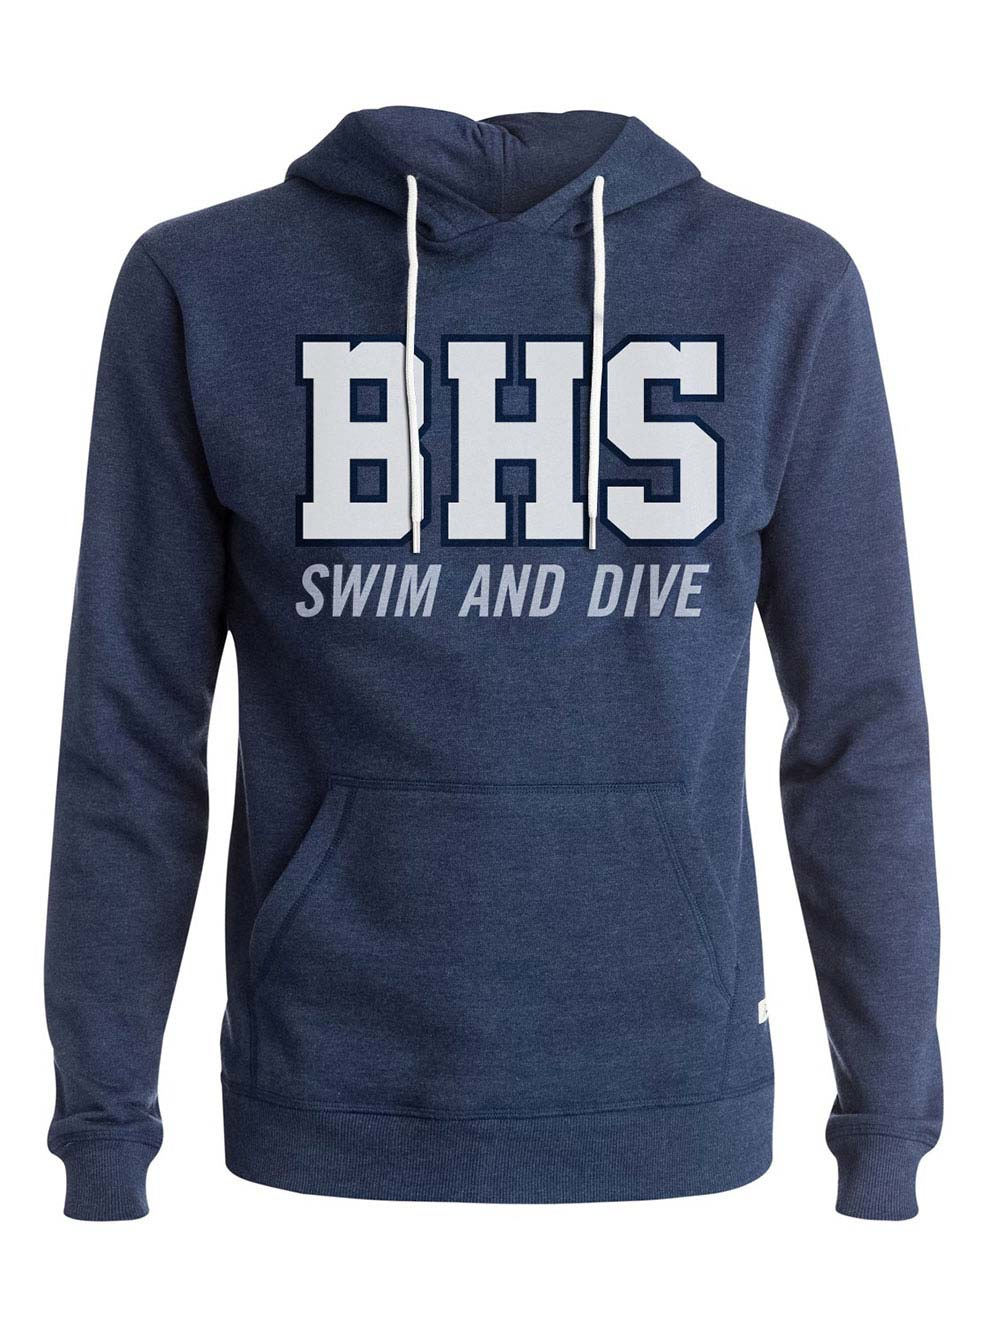 Apparel Design | BHS - Swim And Dive Hoodie